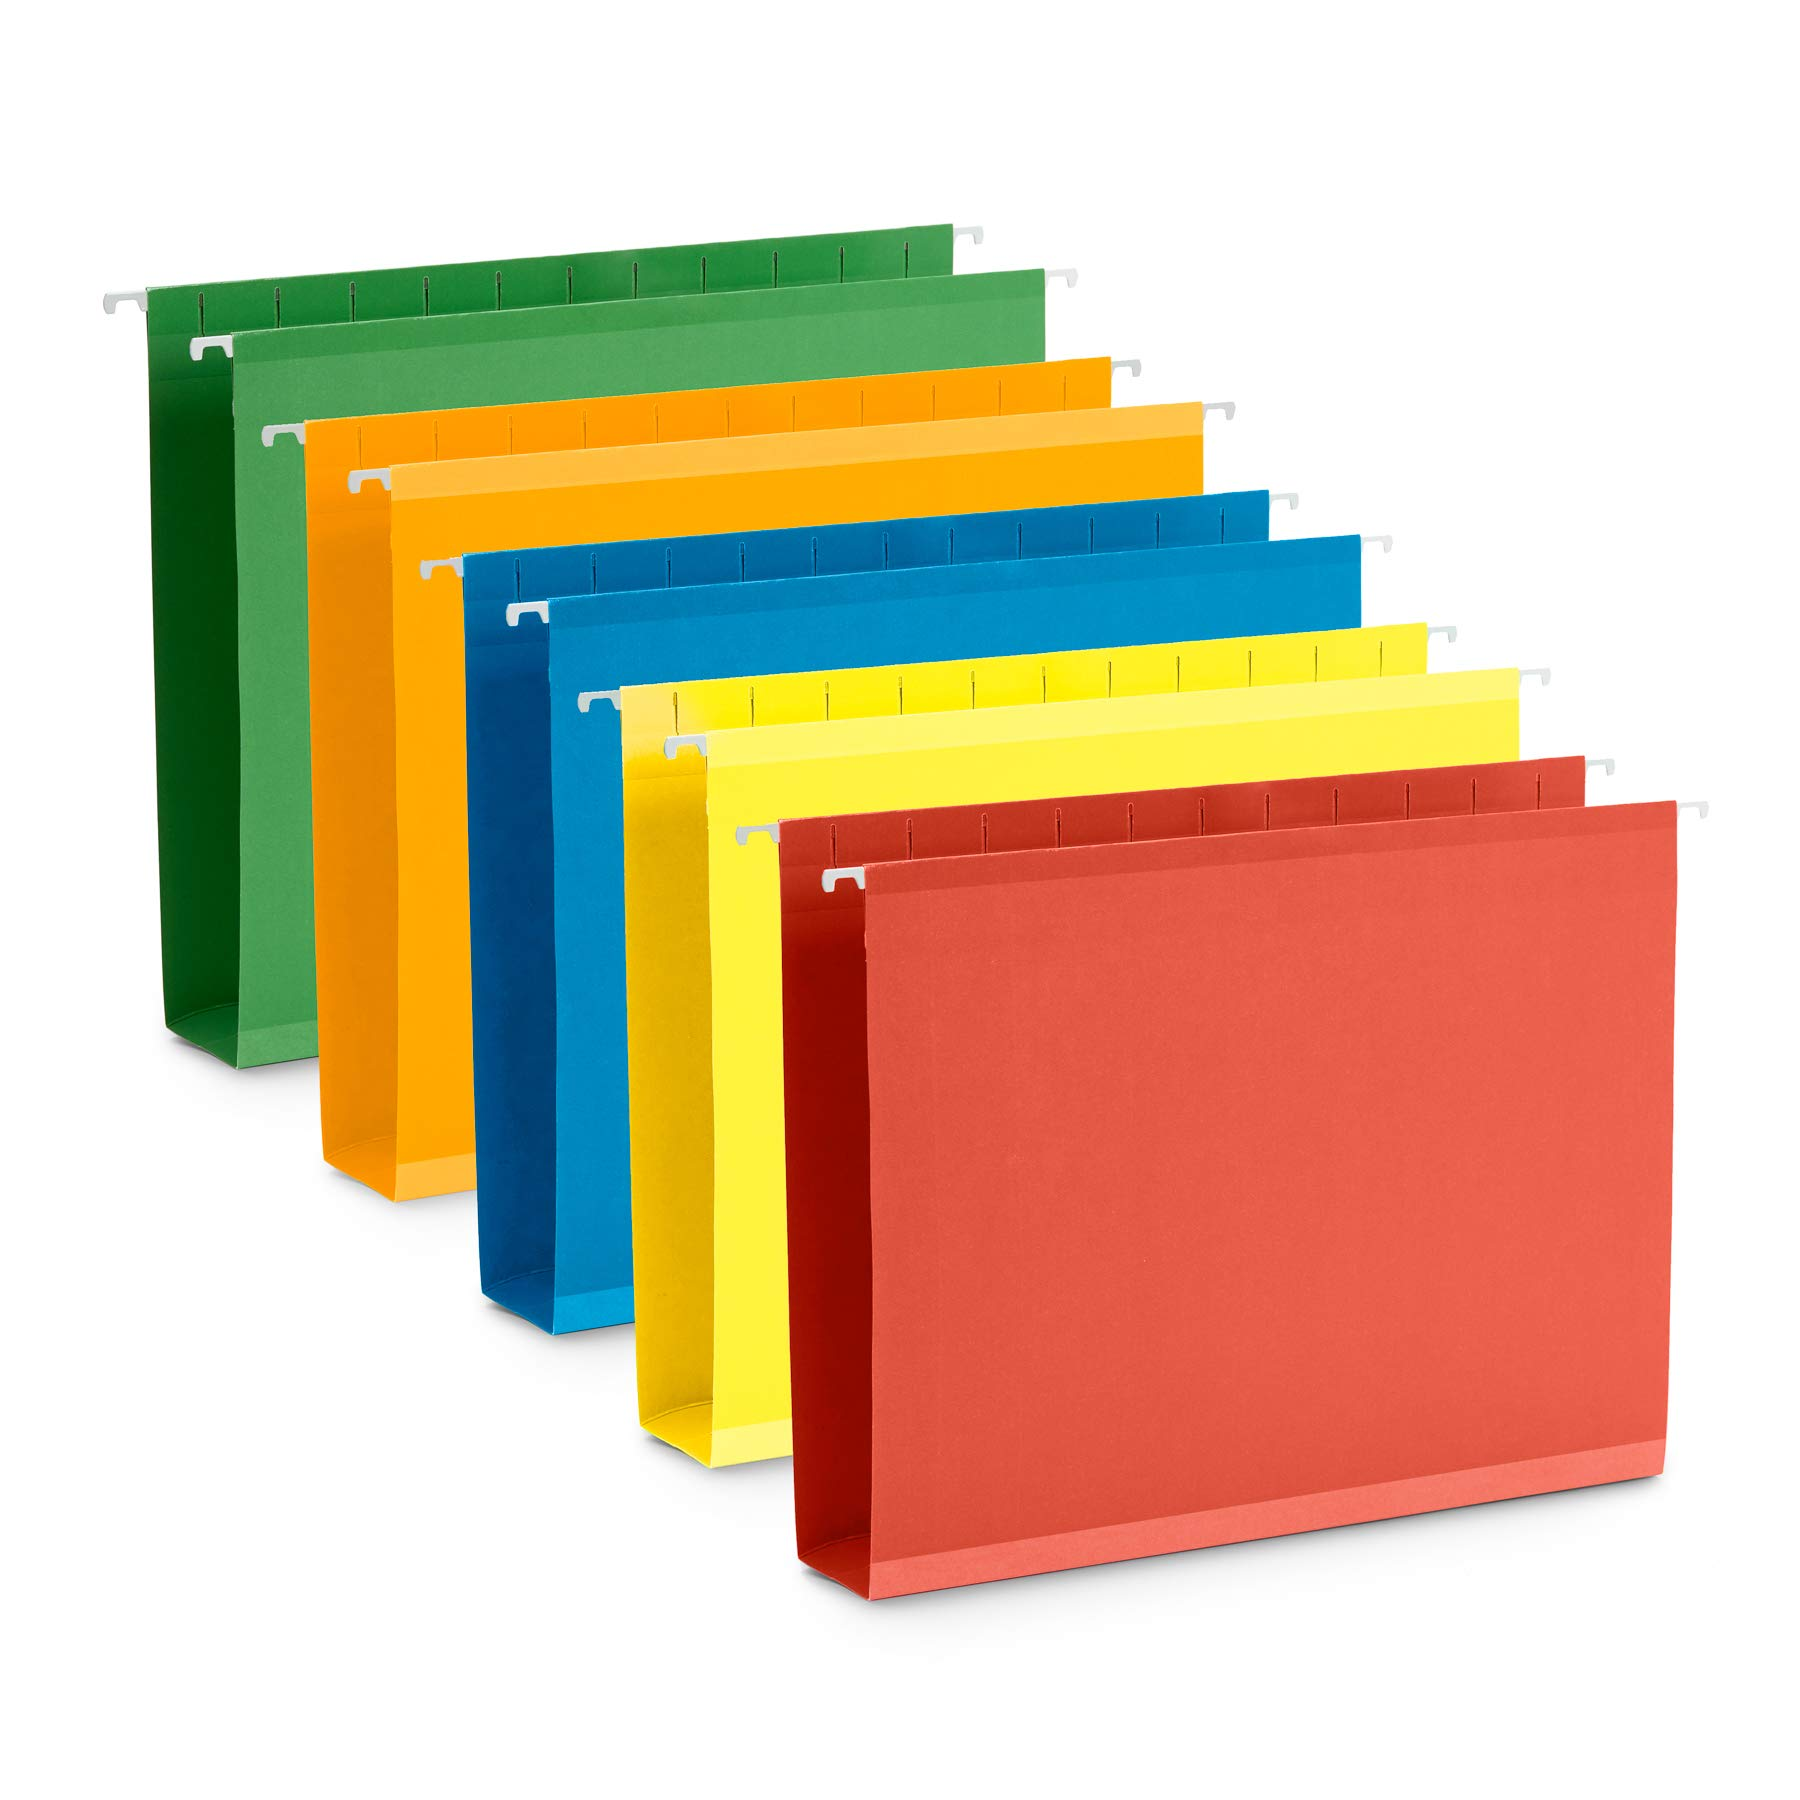 Blue Summit Supplies Extra Capacity Hanging File Folders, 25 Reinforced Hang Folders, Heavy Duty 2 Inch Expansion, Designed for Bulky Files, Medical Charts, Assorted Colors, Letter Size, 25 Pack by Blue Summit Supplies